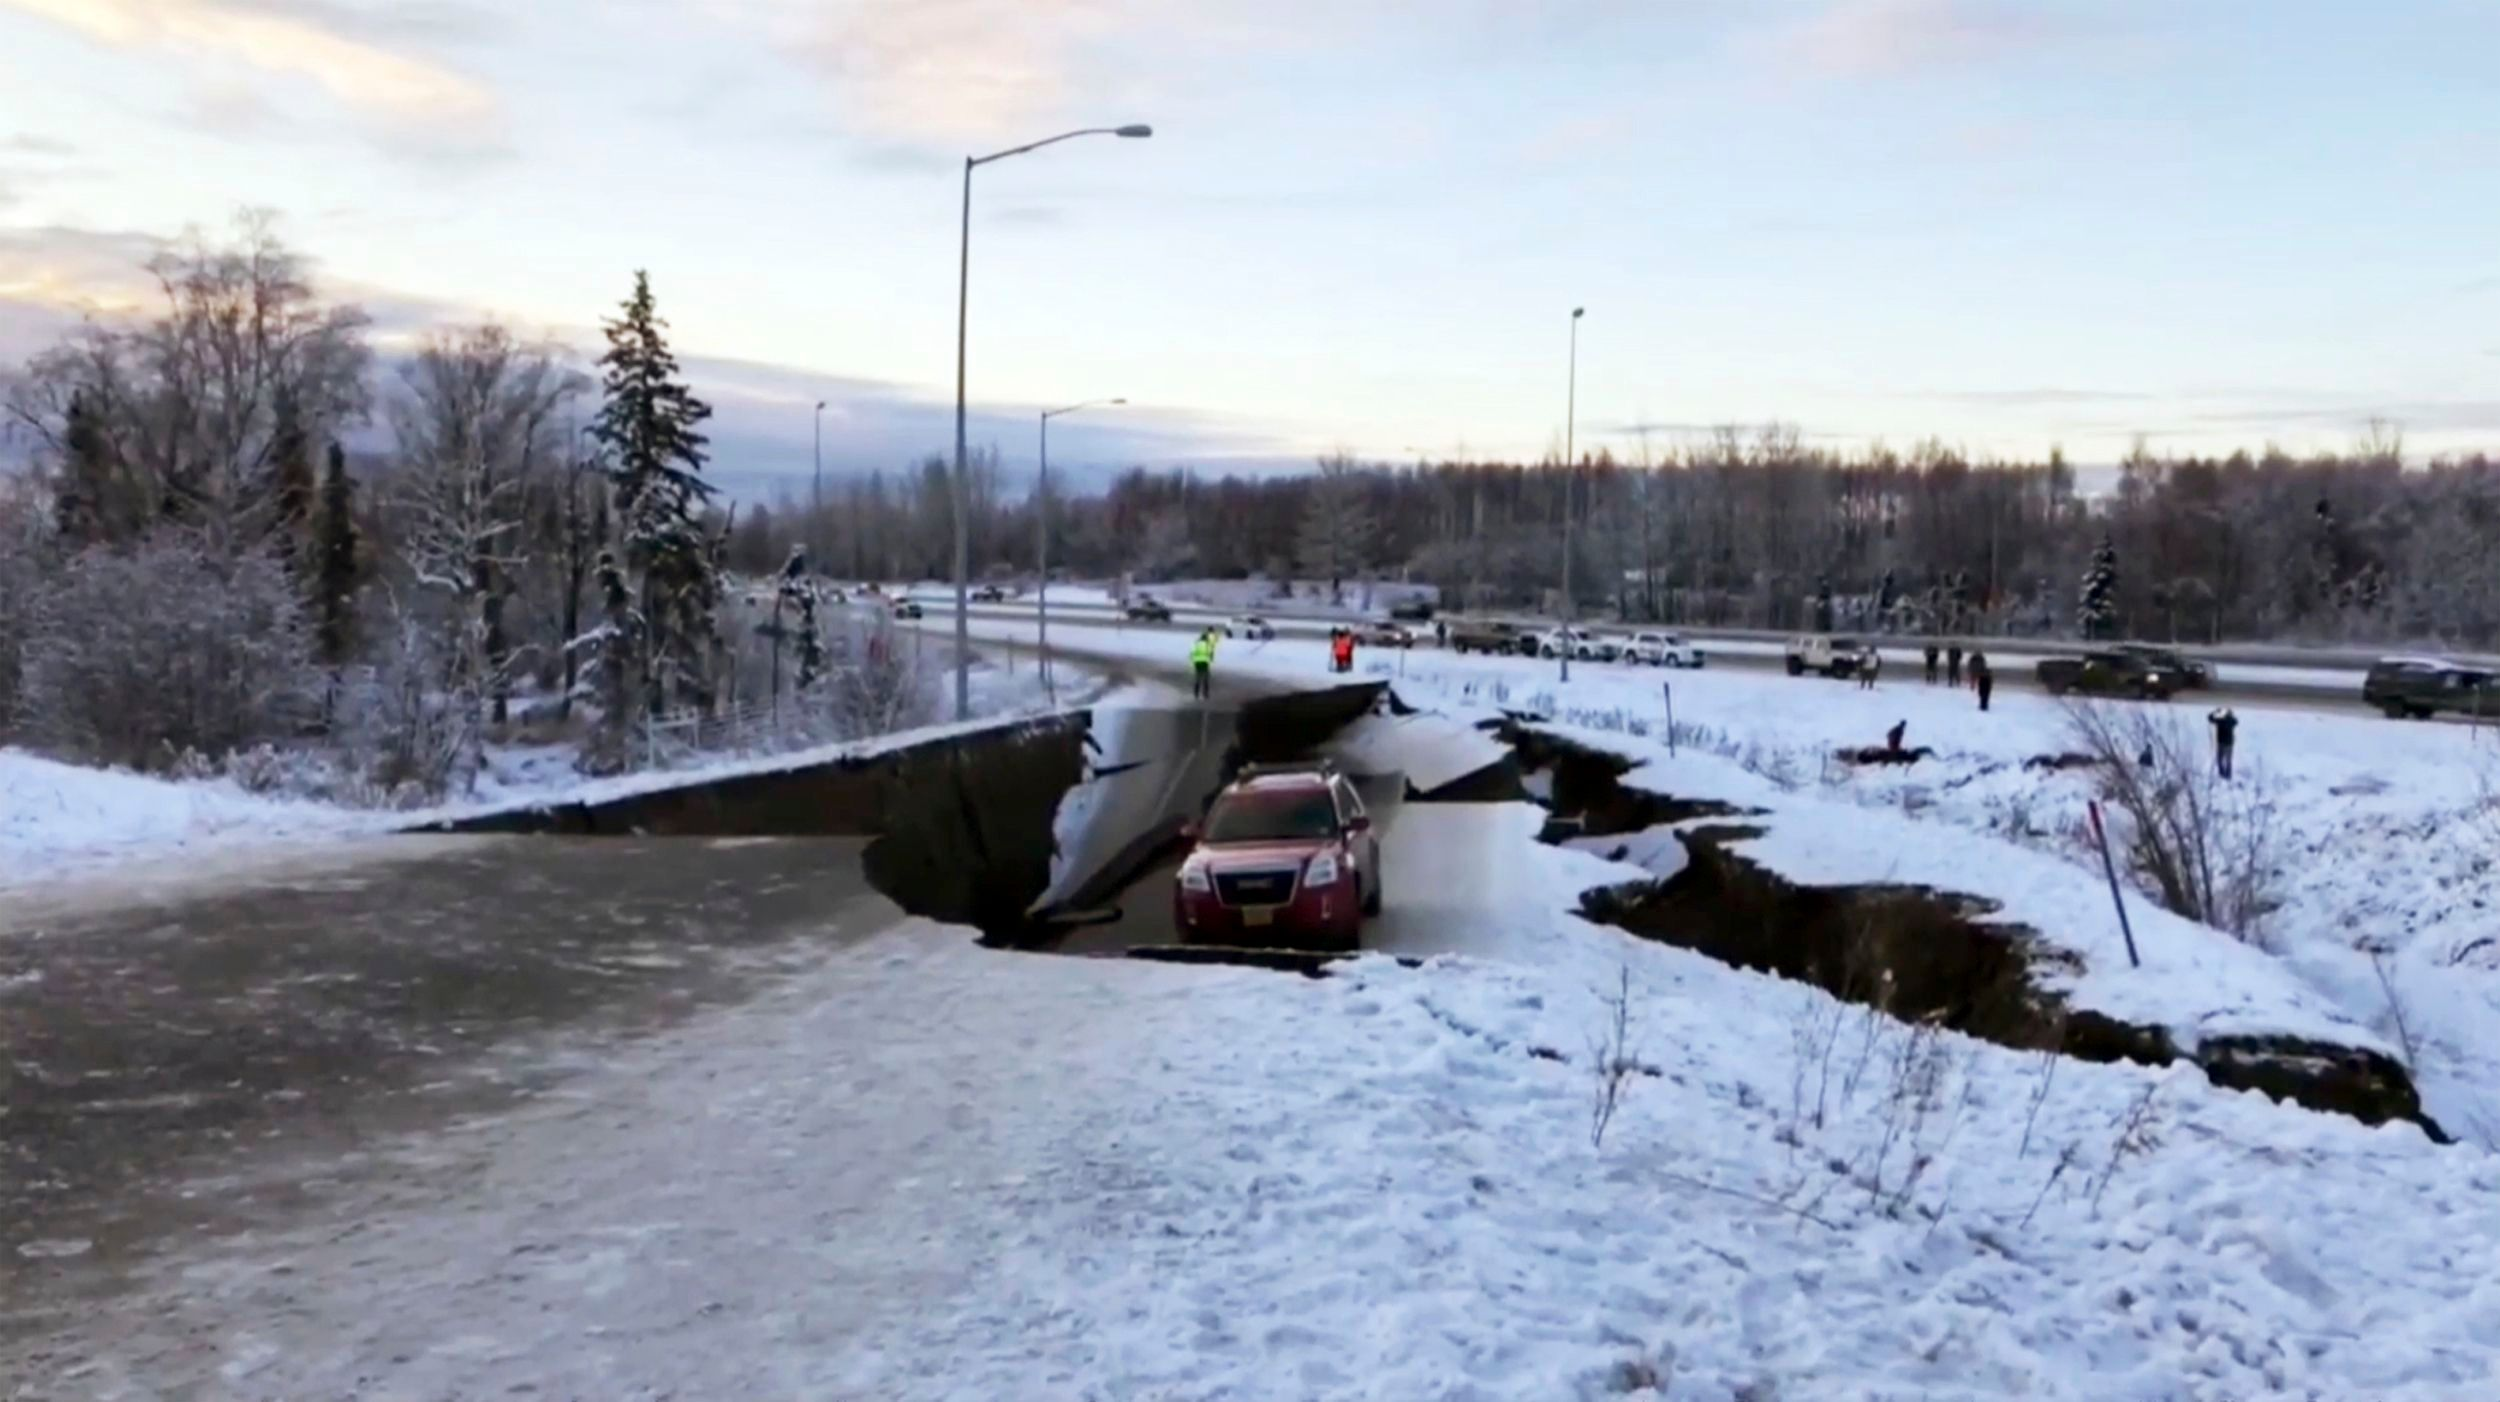 A car is trapped on a collapsed section of the offramp in Anchorage, Alaska on Nov. 30, 2018 after back-to-back earthquakes measuring rocked buildings and buckled roads.